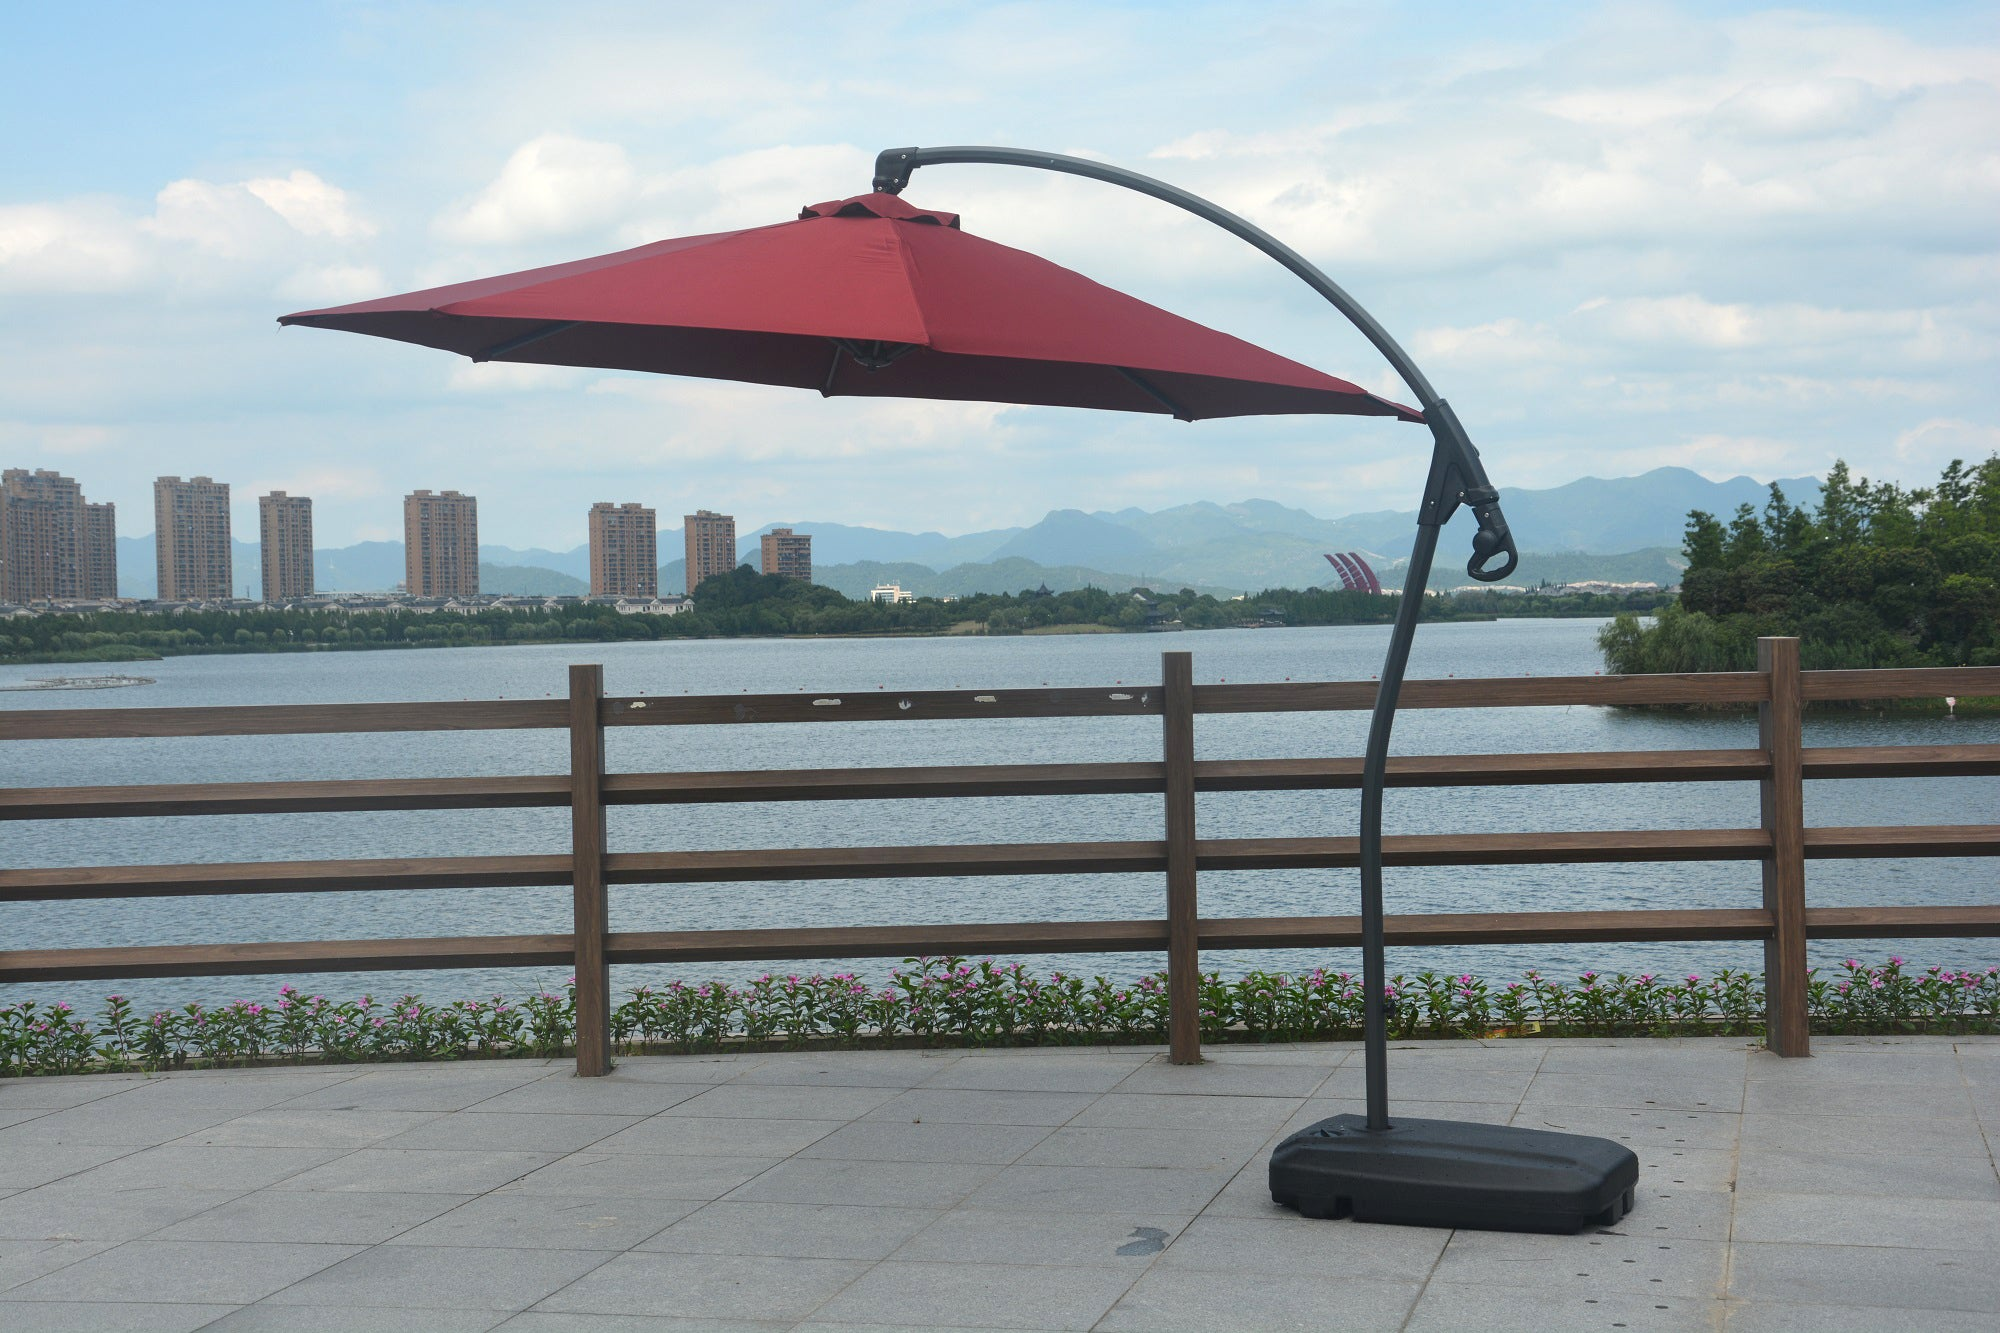 Mr. Backyard manufactured a one of kind cantilever umbrella that is durable and long lasting unlike other cheaper models online.